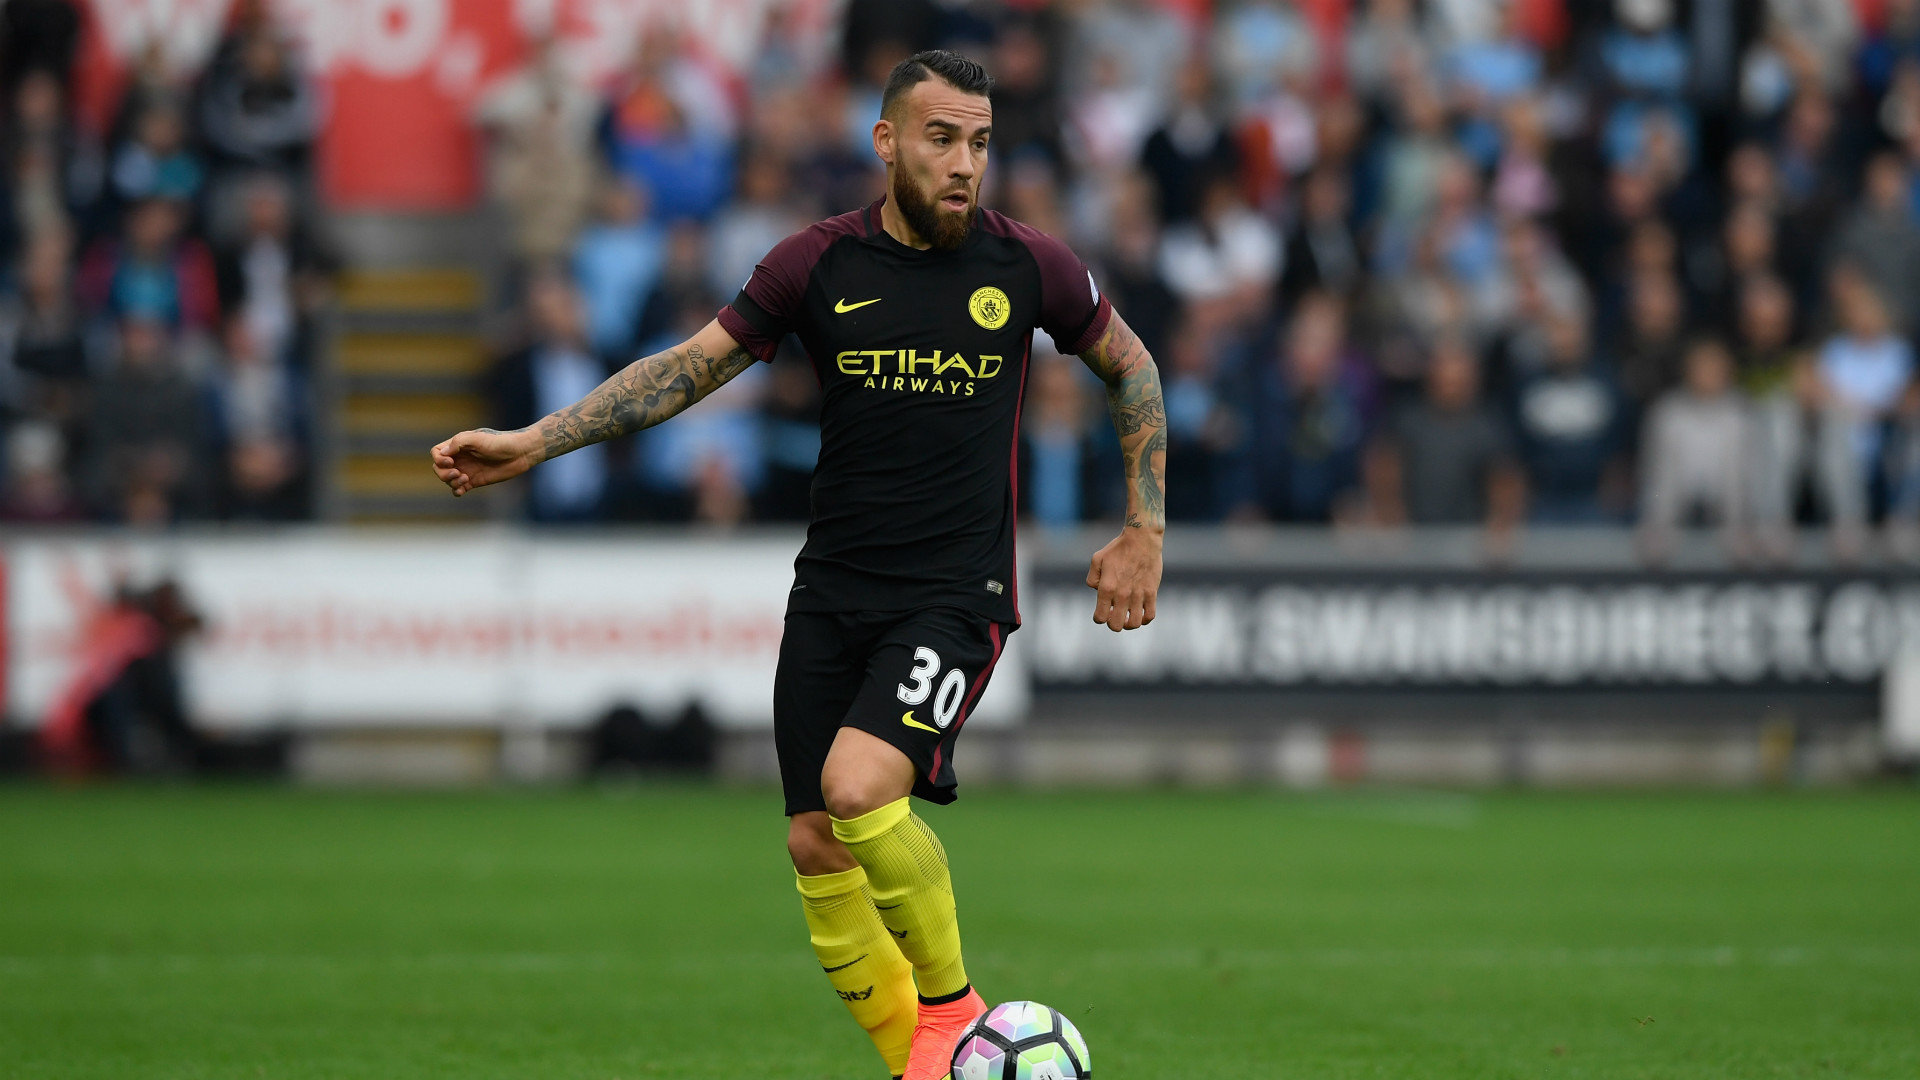 Otamendi Eager For City To Maintain Form